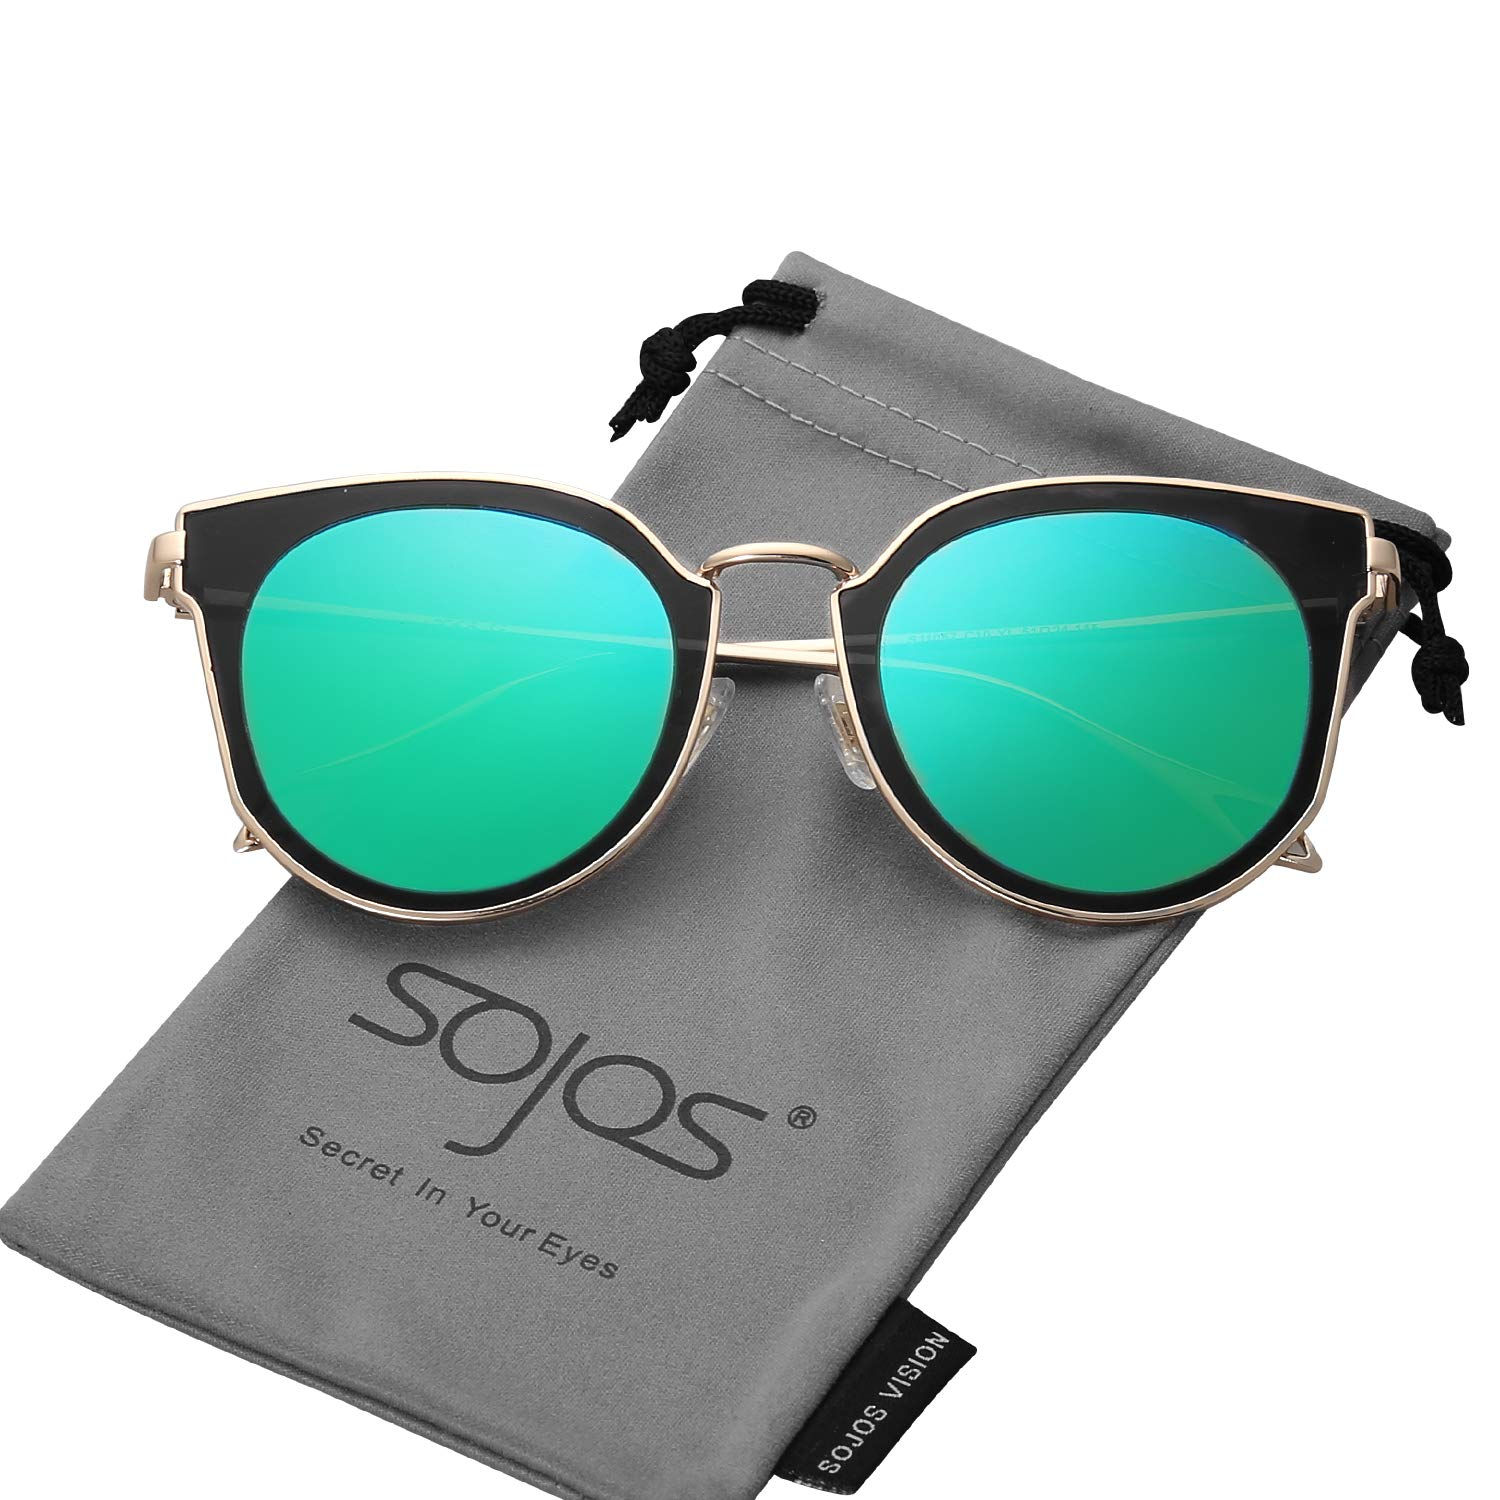 a191b31a49 SOJOS Fashion Polarized Sunglasses for Women UV400 Mirrored Lens SJ1057  with Gold Frame Green Mirrored